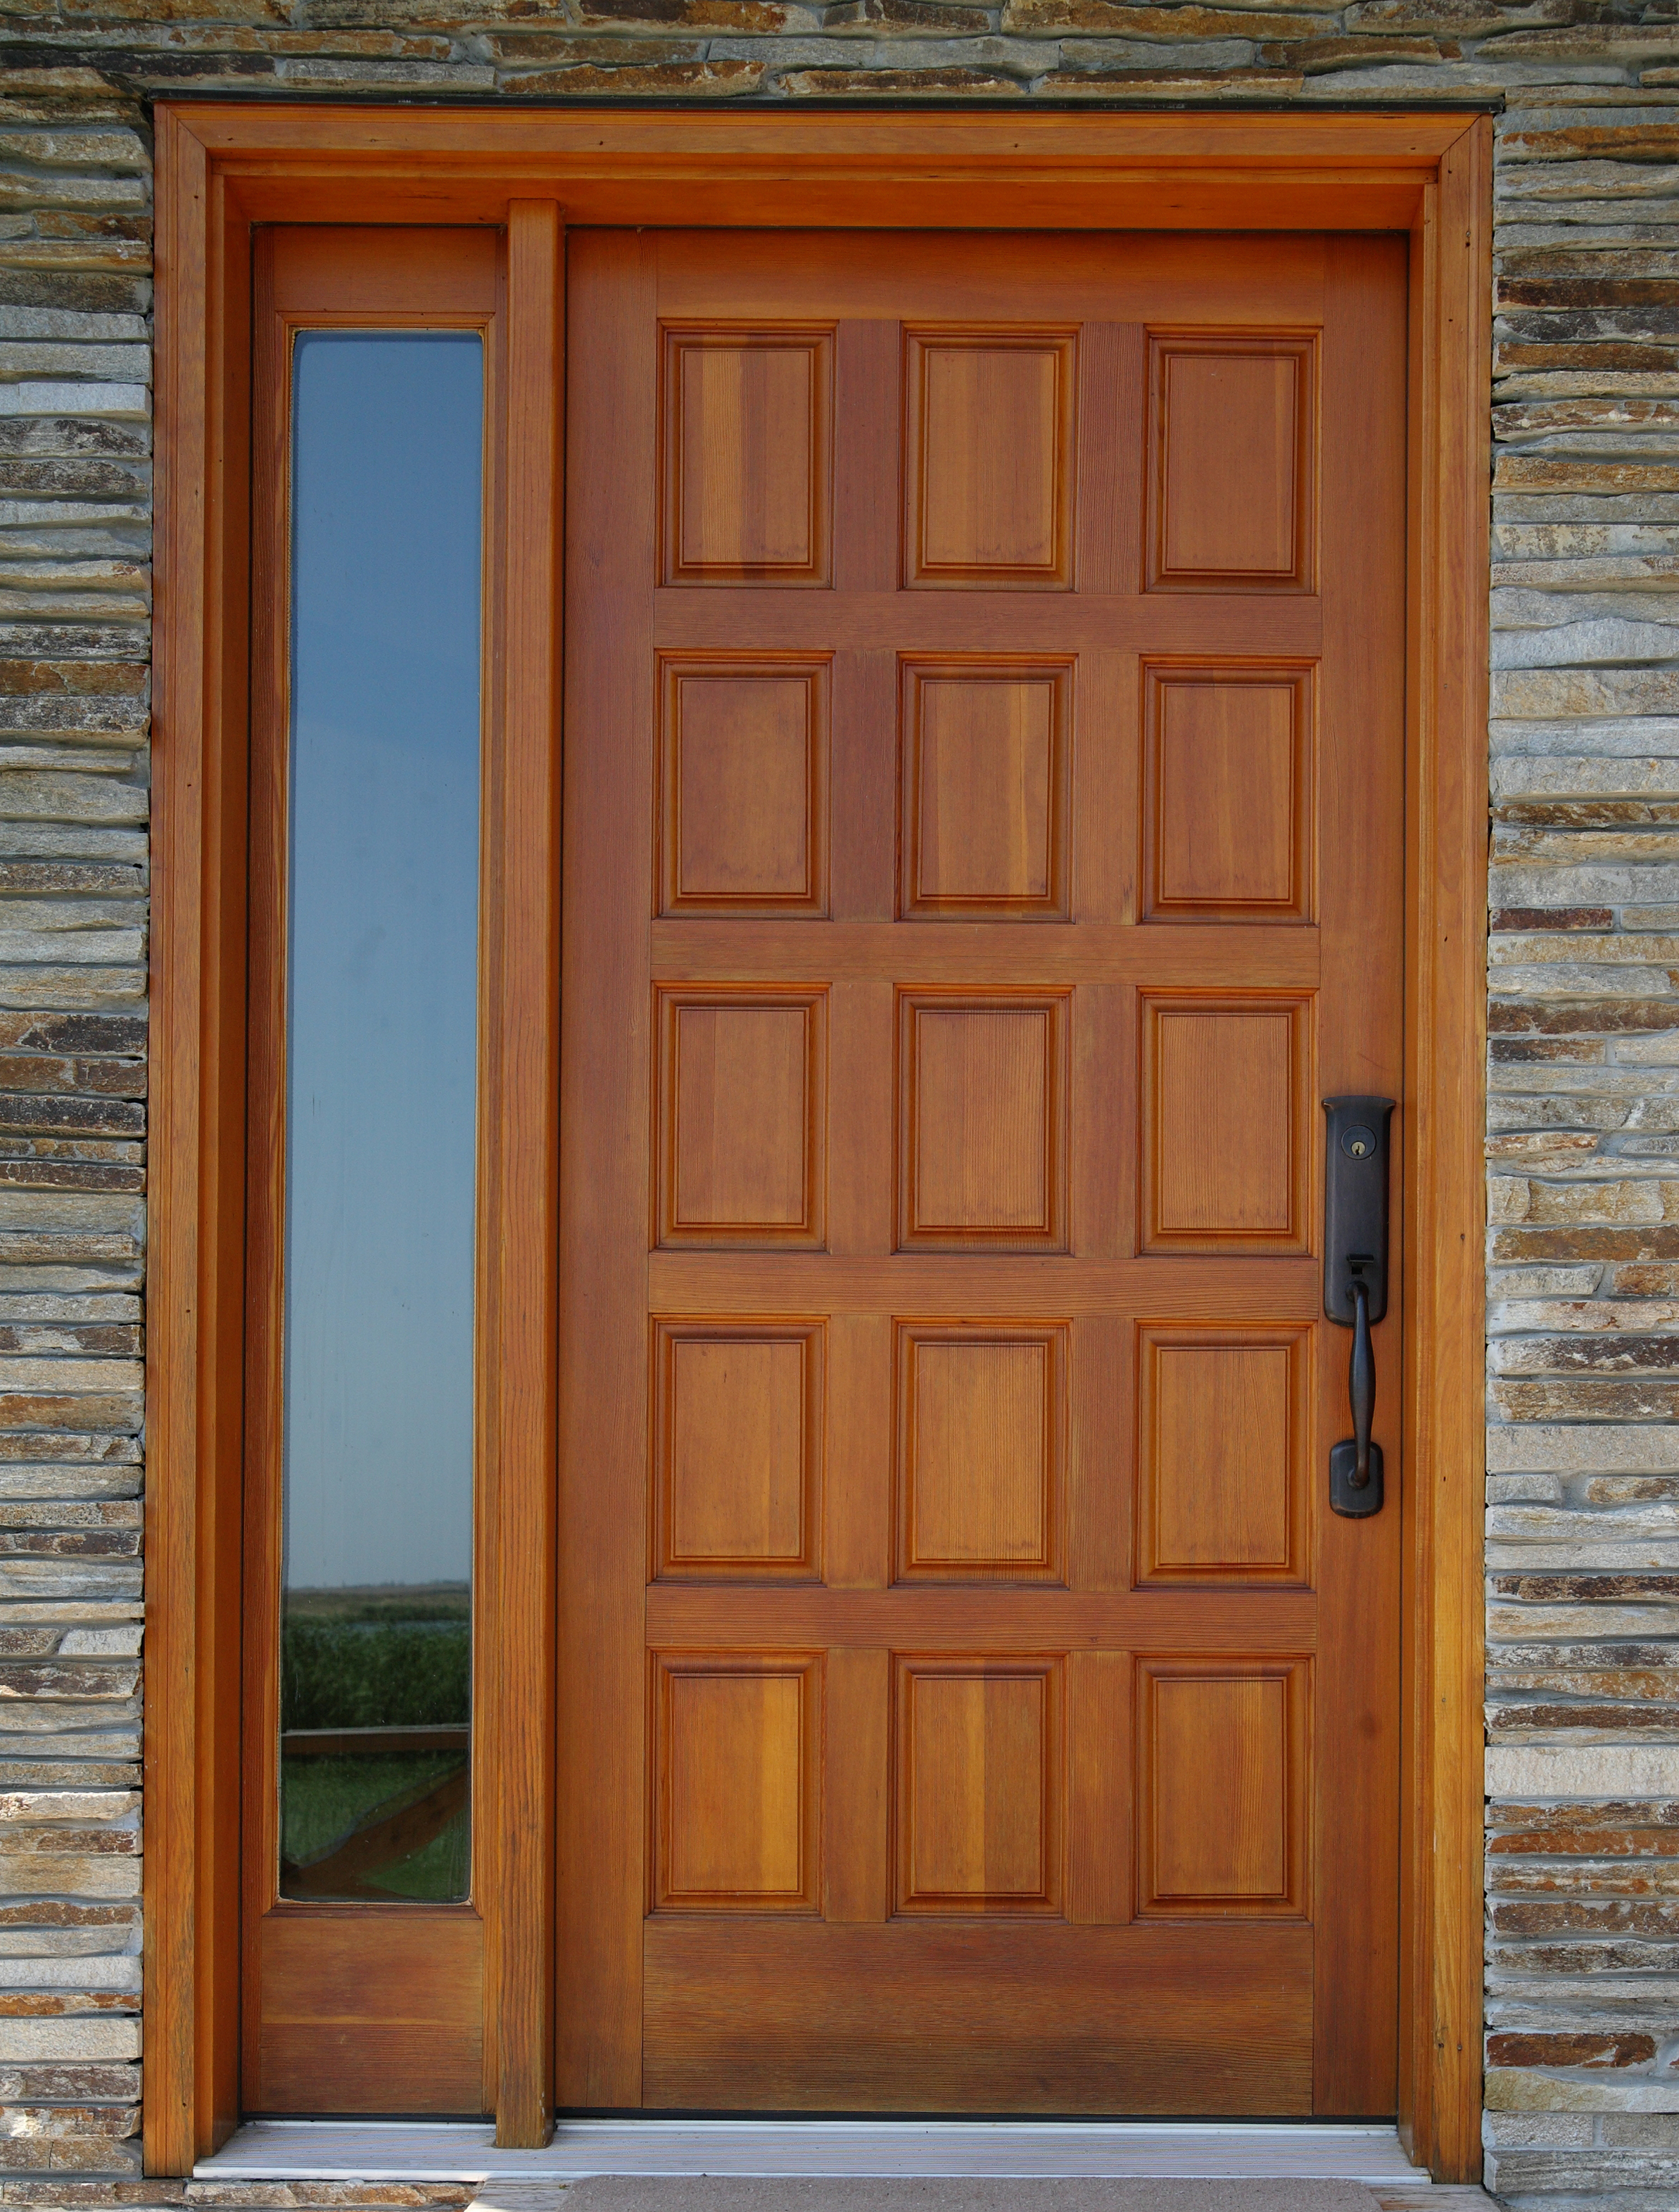 3144 #7E4221 Entry Doors ECO Windows & Doors picture/photo Exterior Fiberglass Doors 39992386